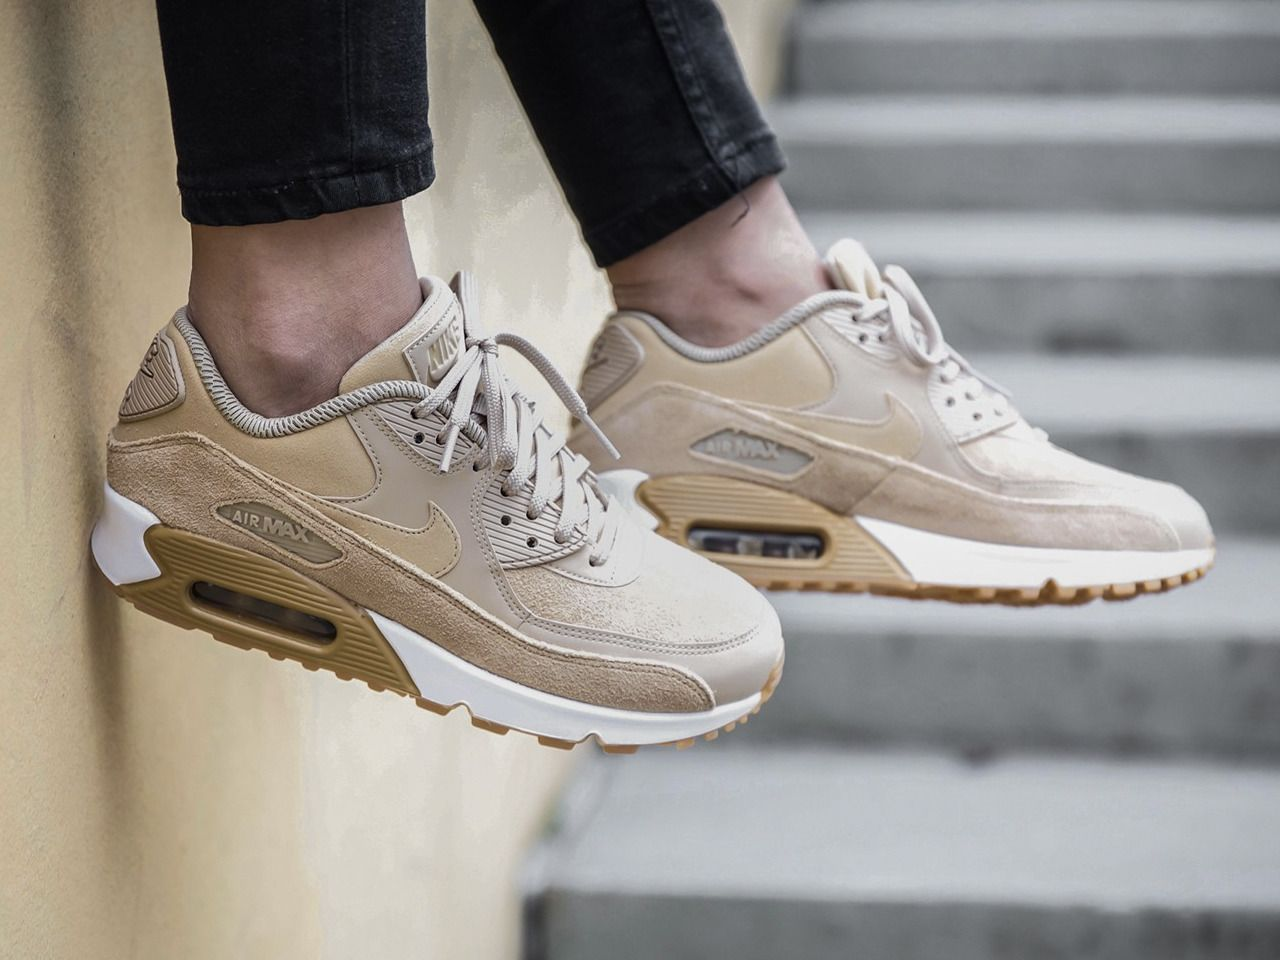 hot sale online 24d25 1589d Nike wmns Air Max 90 SE - Mushroom Gum Light Brown - 2017 (by Gino Gold)